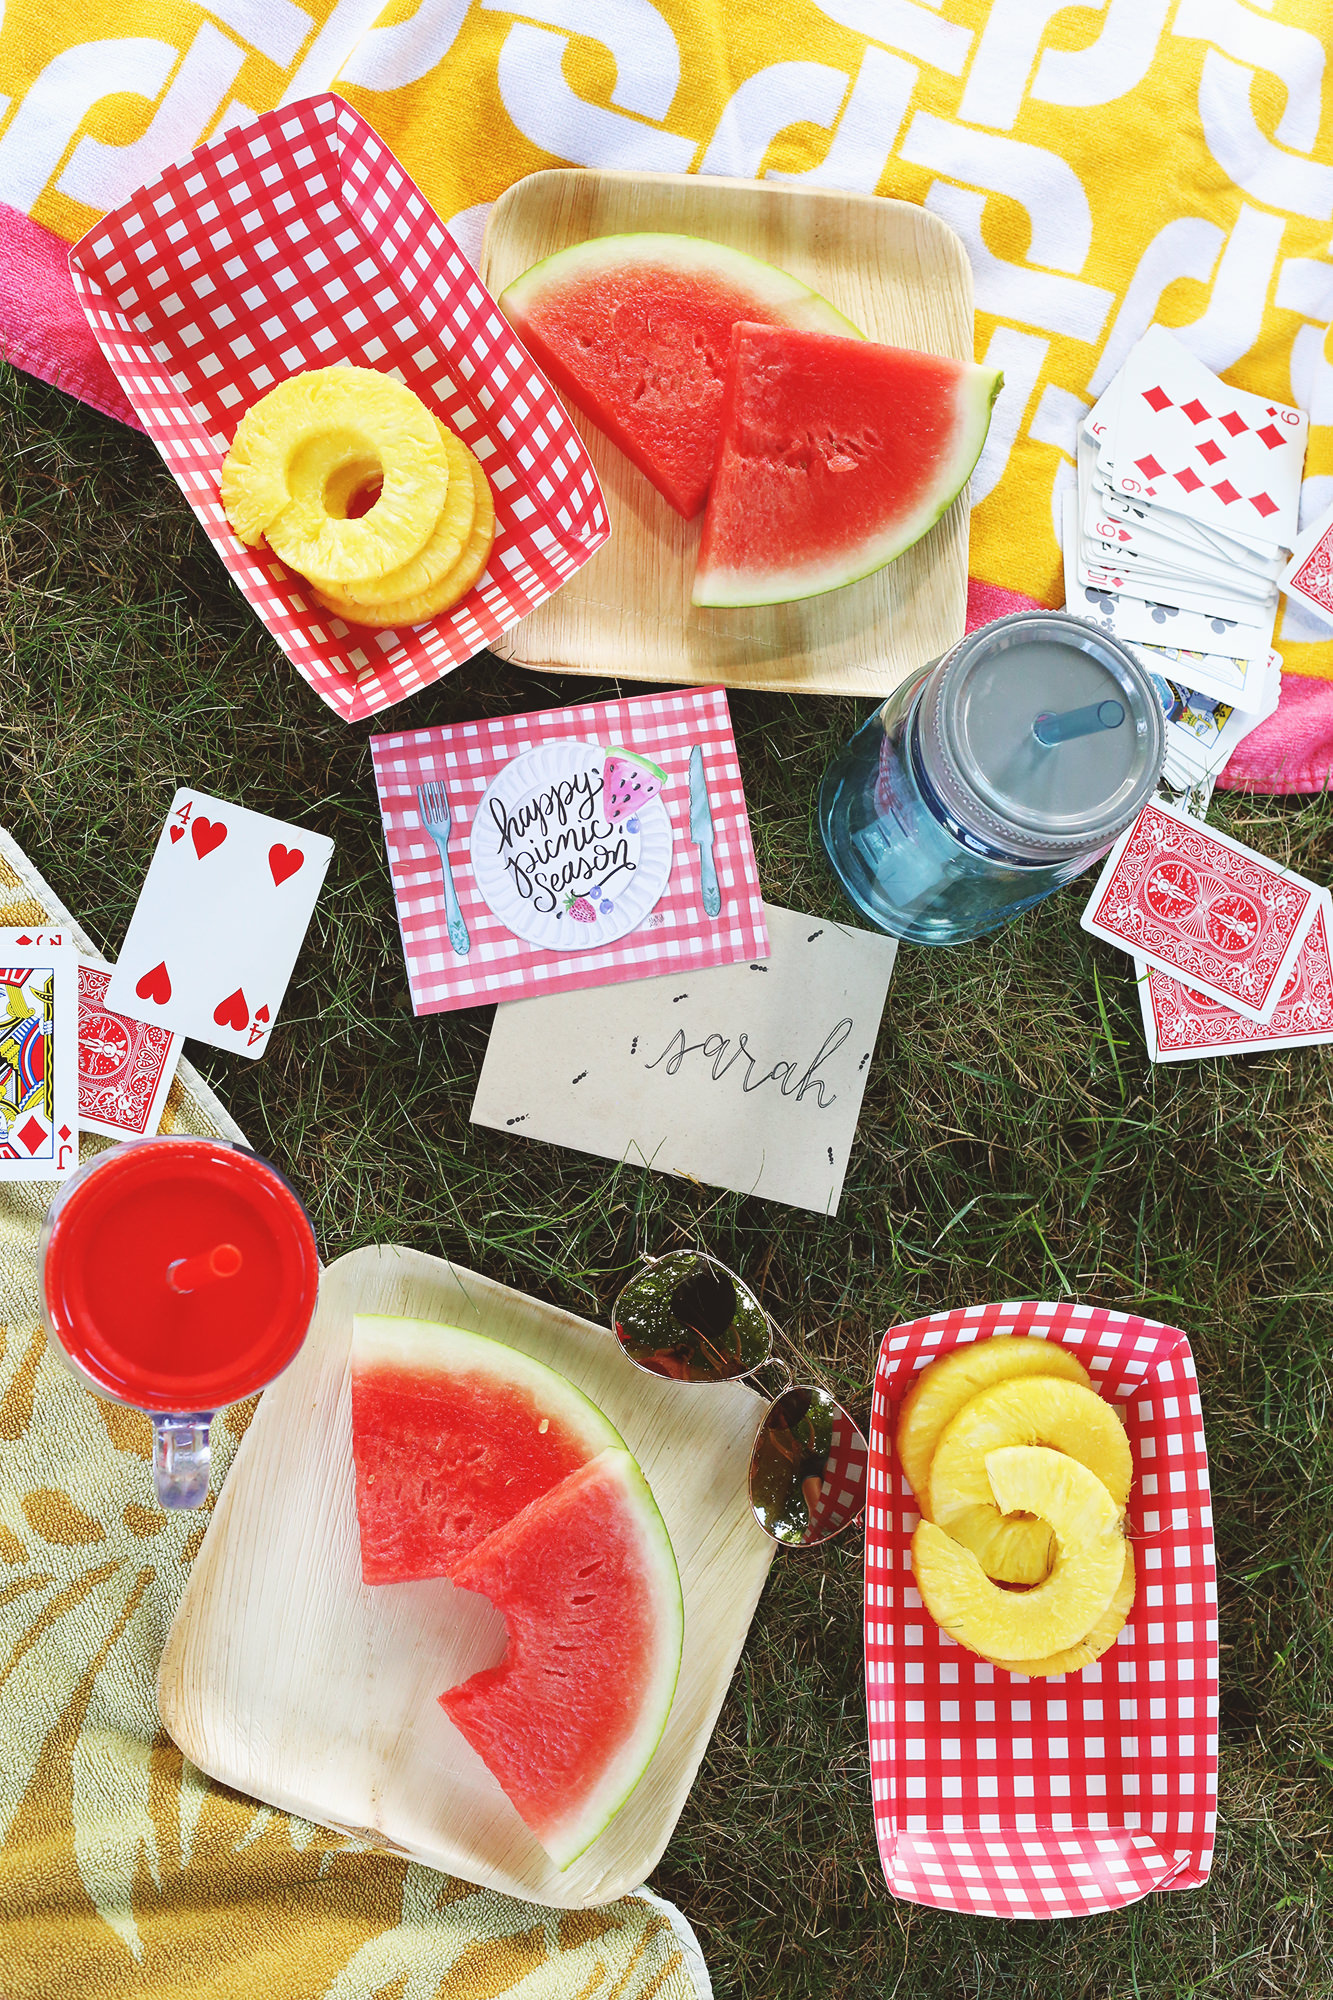 No picnic is complete with out fresh summer fruit! Pineapple and watermelon are perfect! On Lily & Val Living!